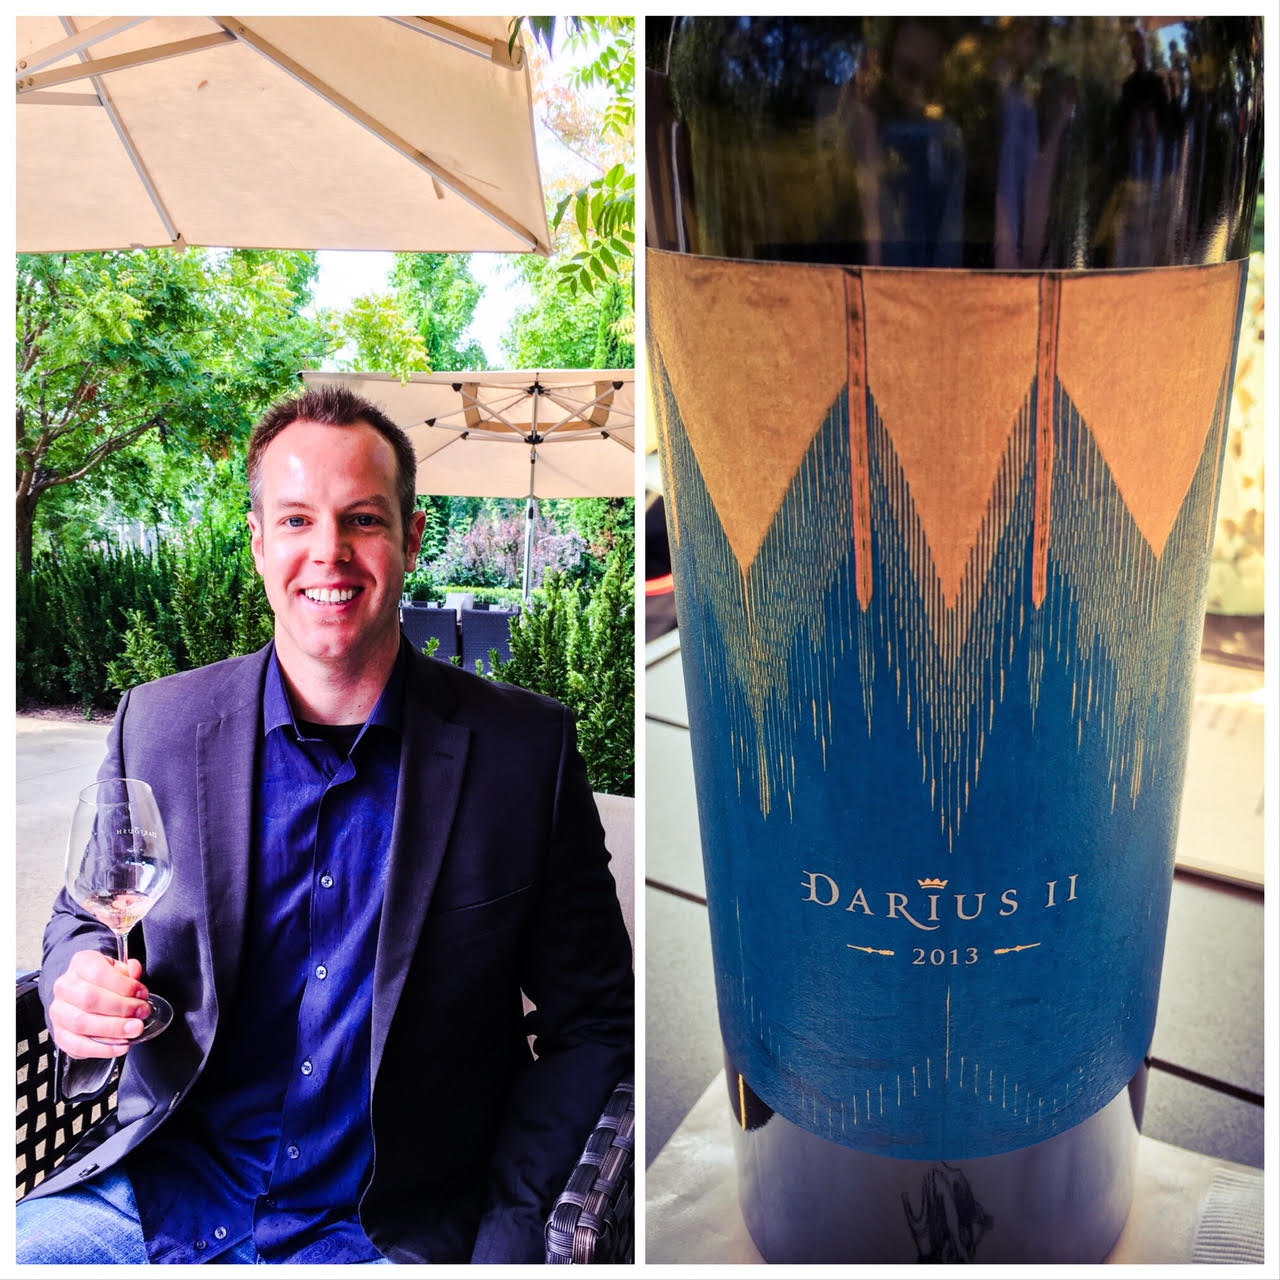 It was a marvelous day tasting at one of the most beautiful wineries in California, Darioush.